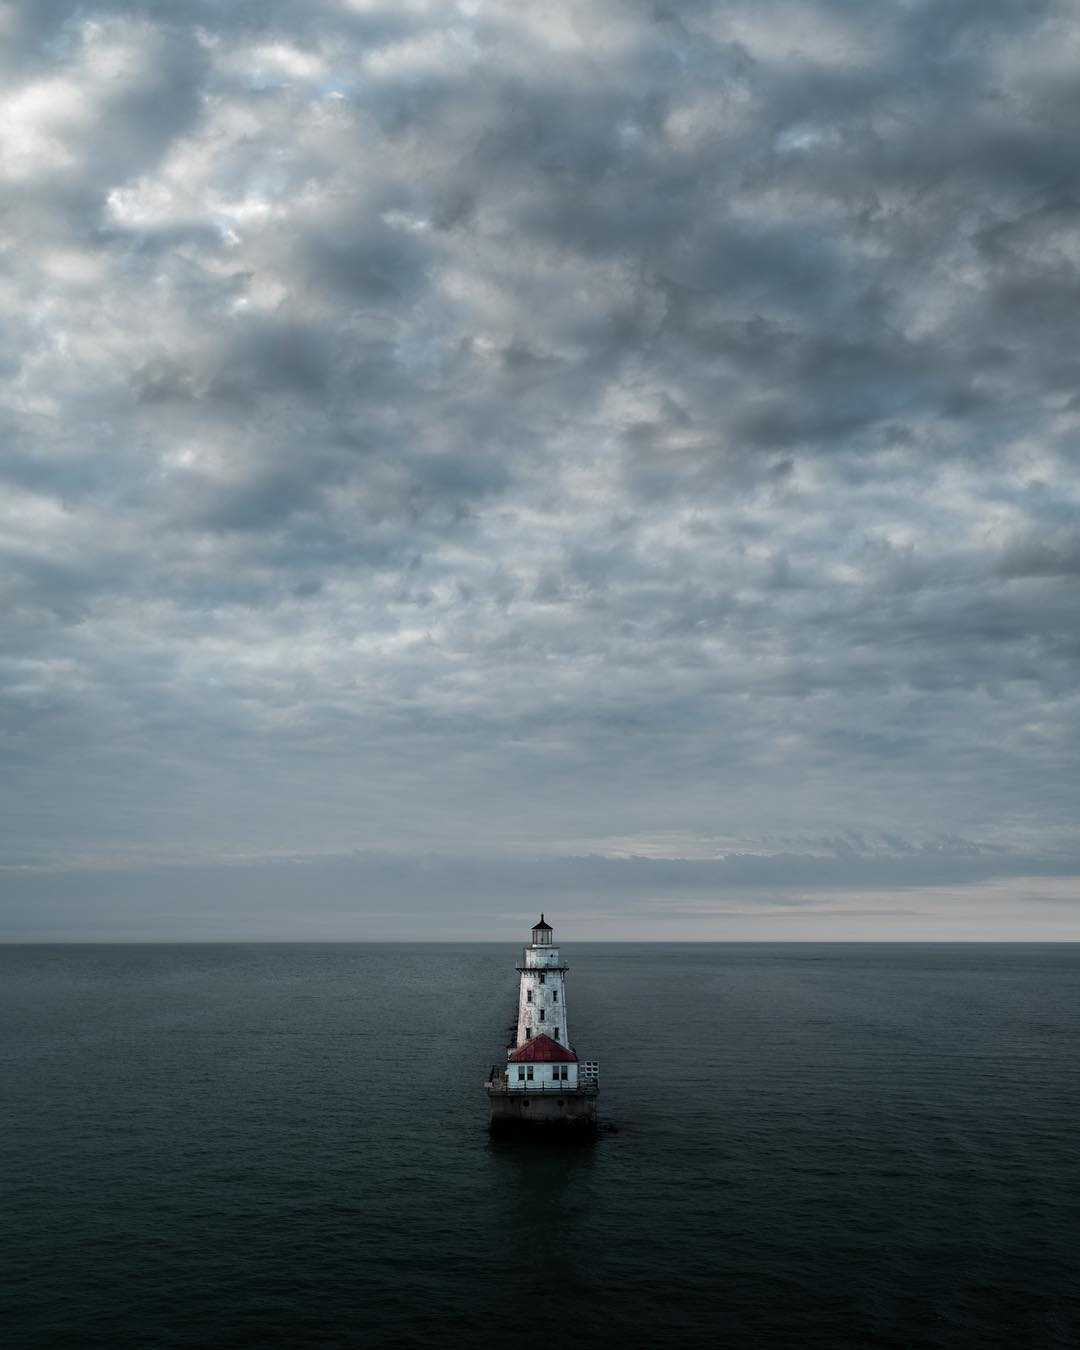 Drone Photo of a Lighthouse